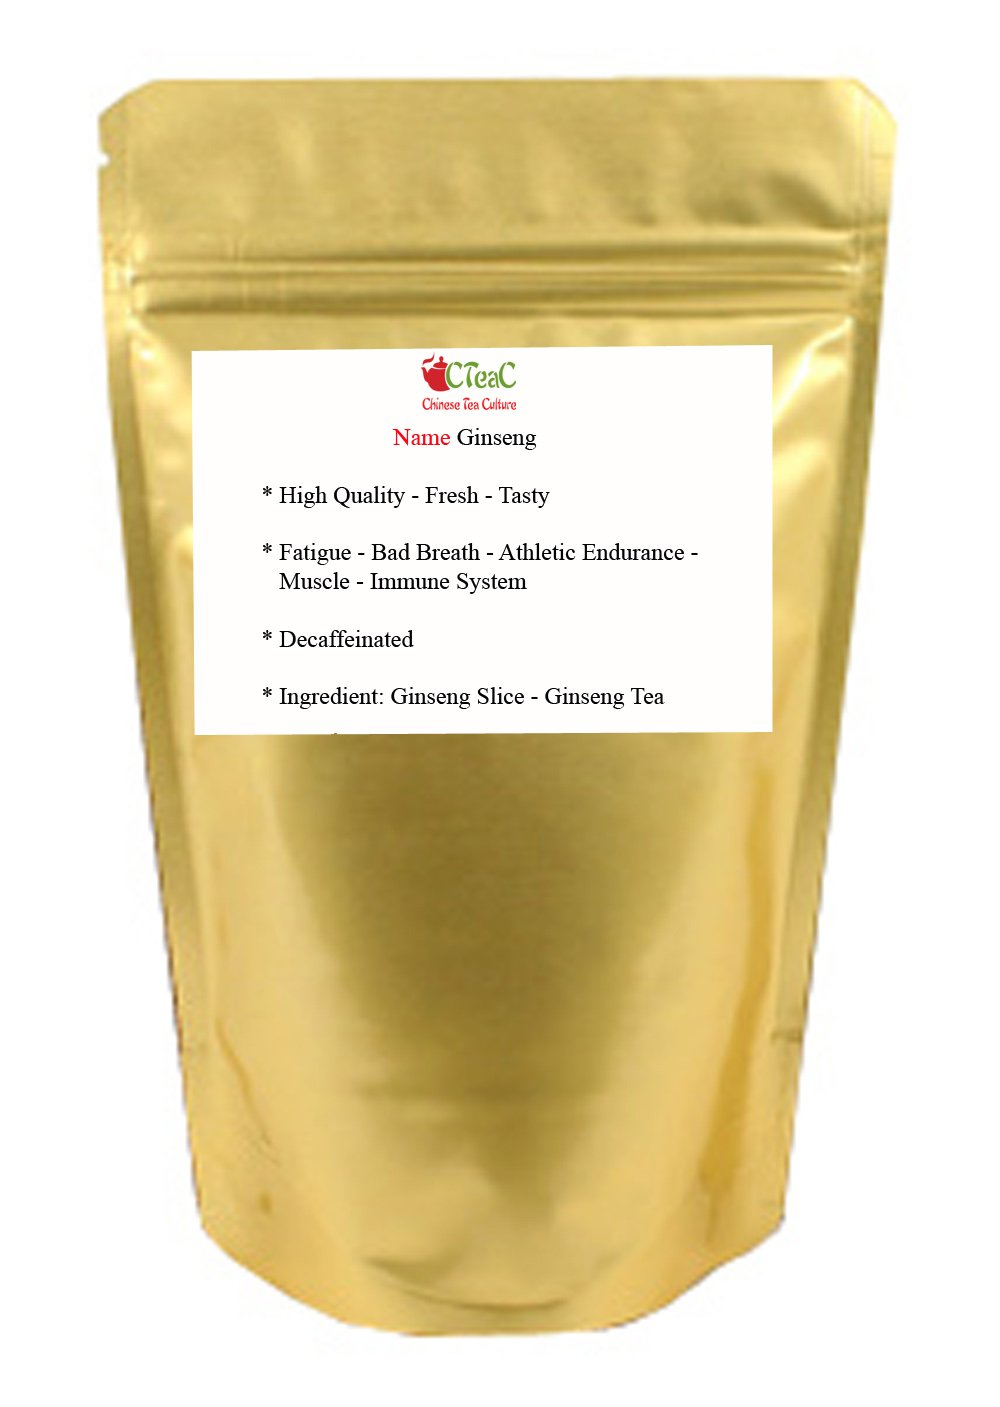 Ginseng – Wisconsin Ginseng – Ginseng Root – Ginseng Slice – Ginseng Tea – Herbal – Loose Leaf – 8oz